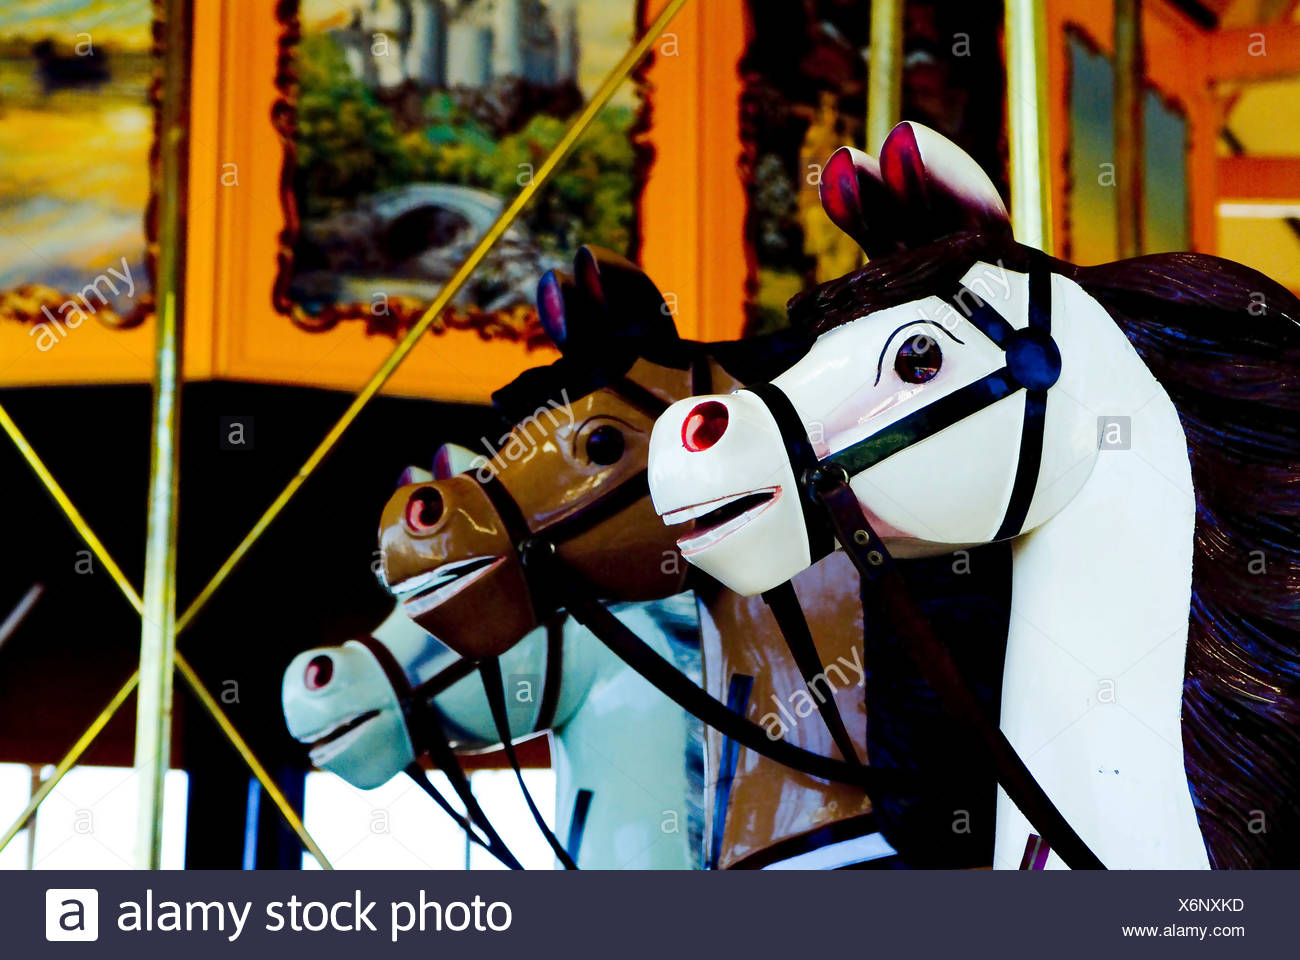 Colourful Antique Carousel Horses On A Merry Go Round